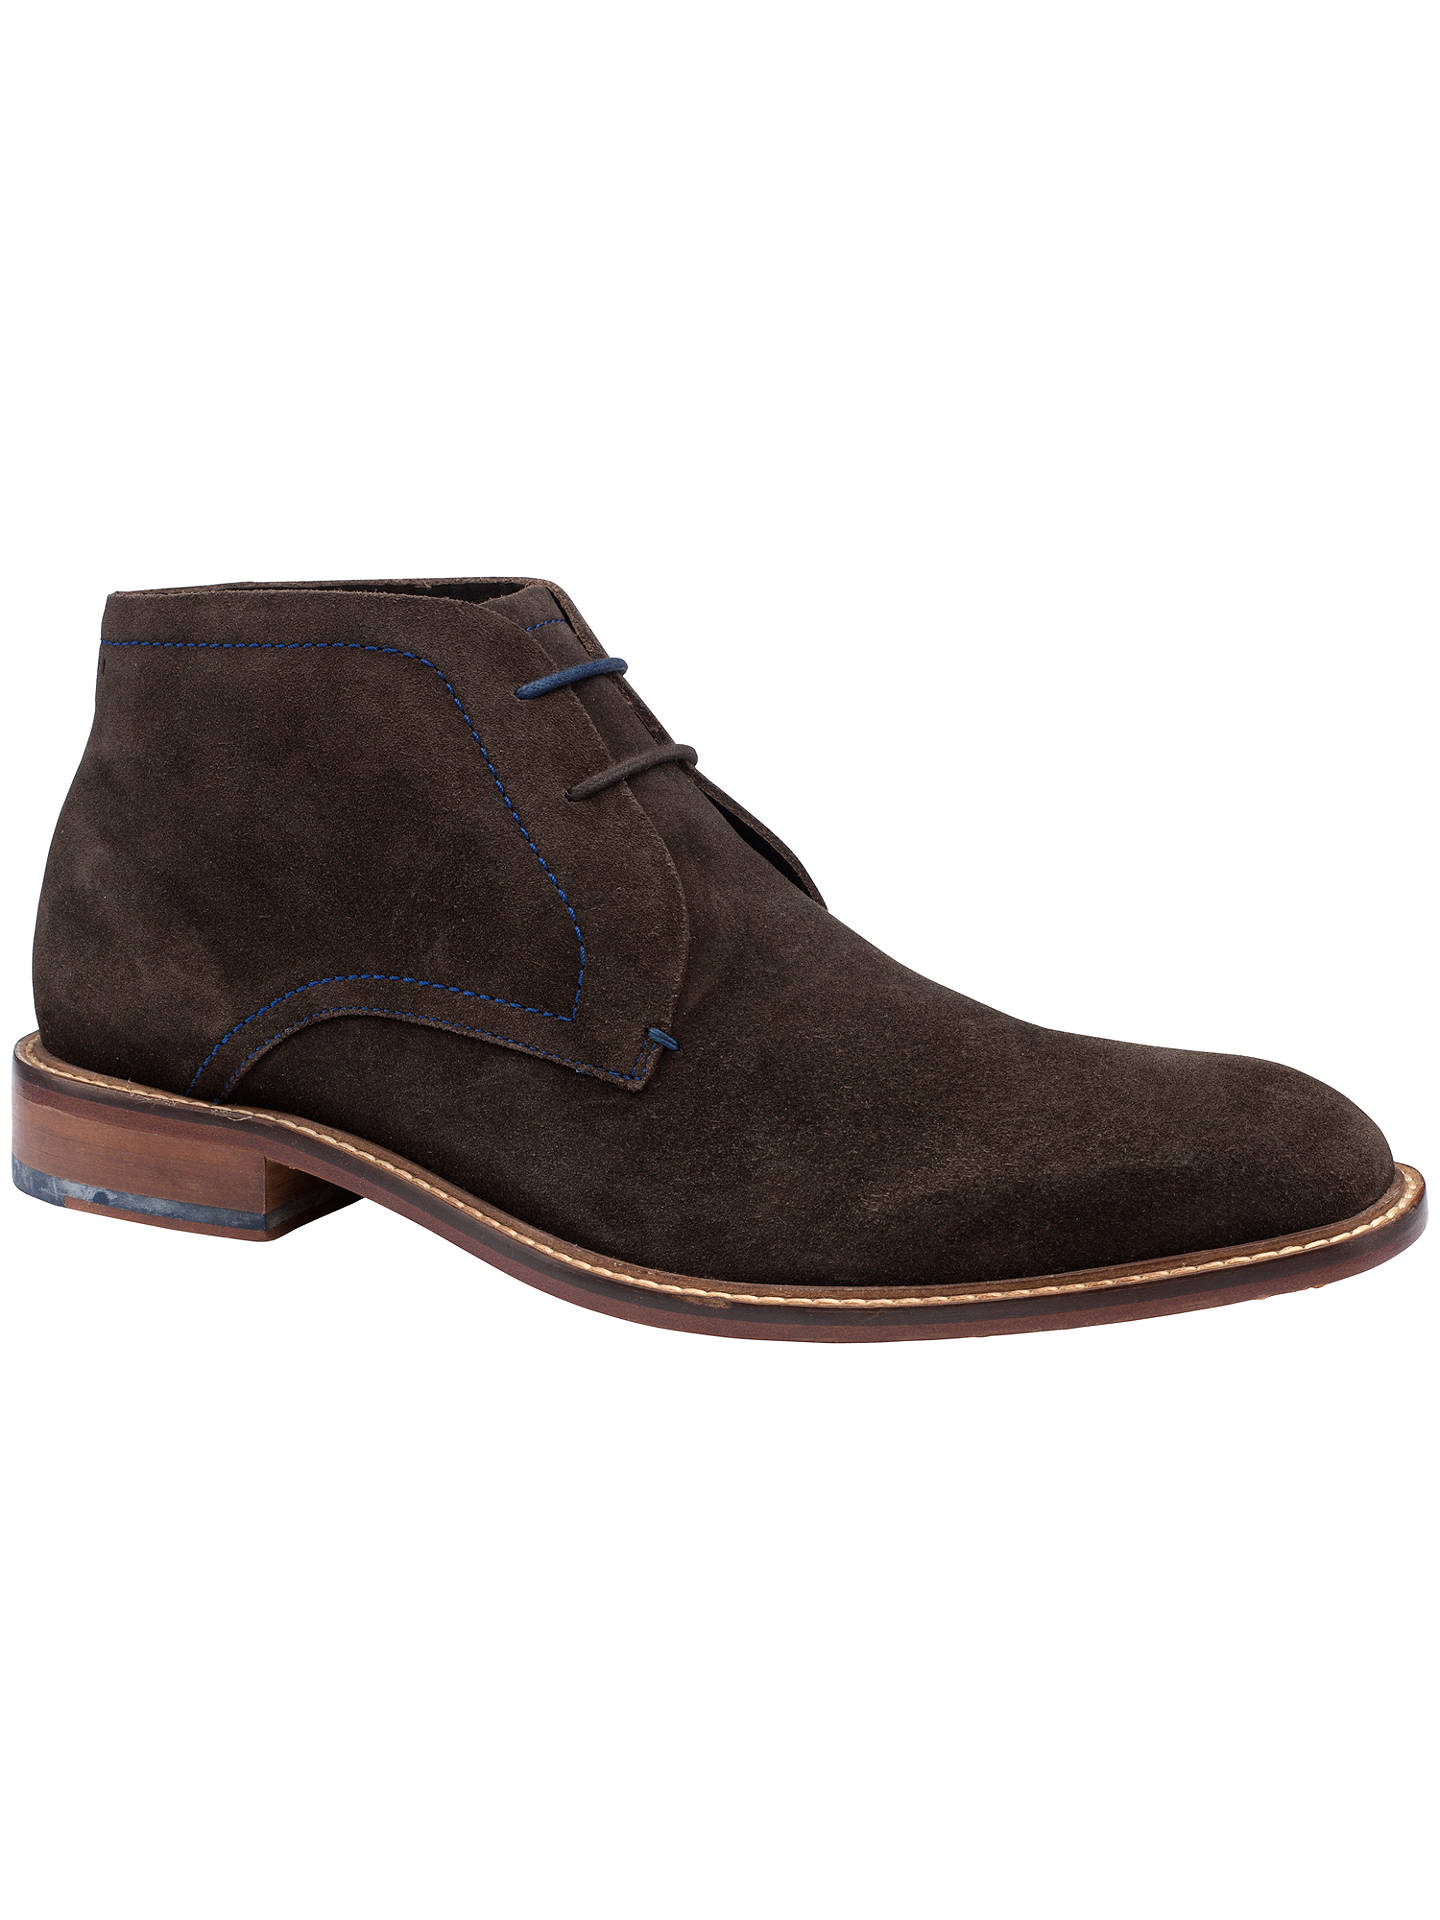 Ted Baker Torsdi Suede Chukka Boots, Brown at John Lewis